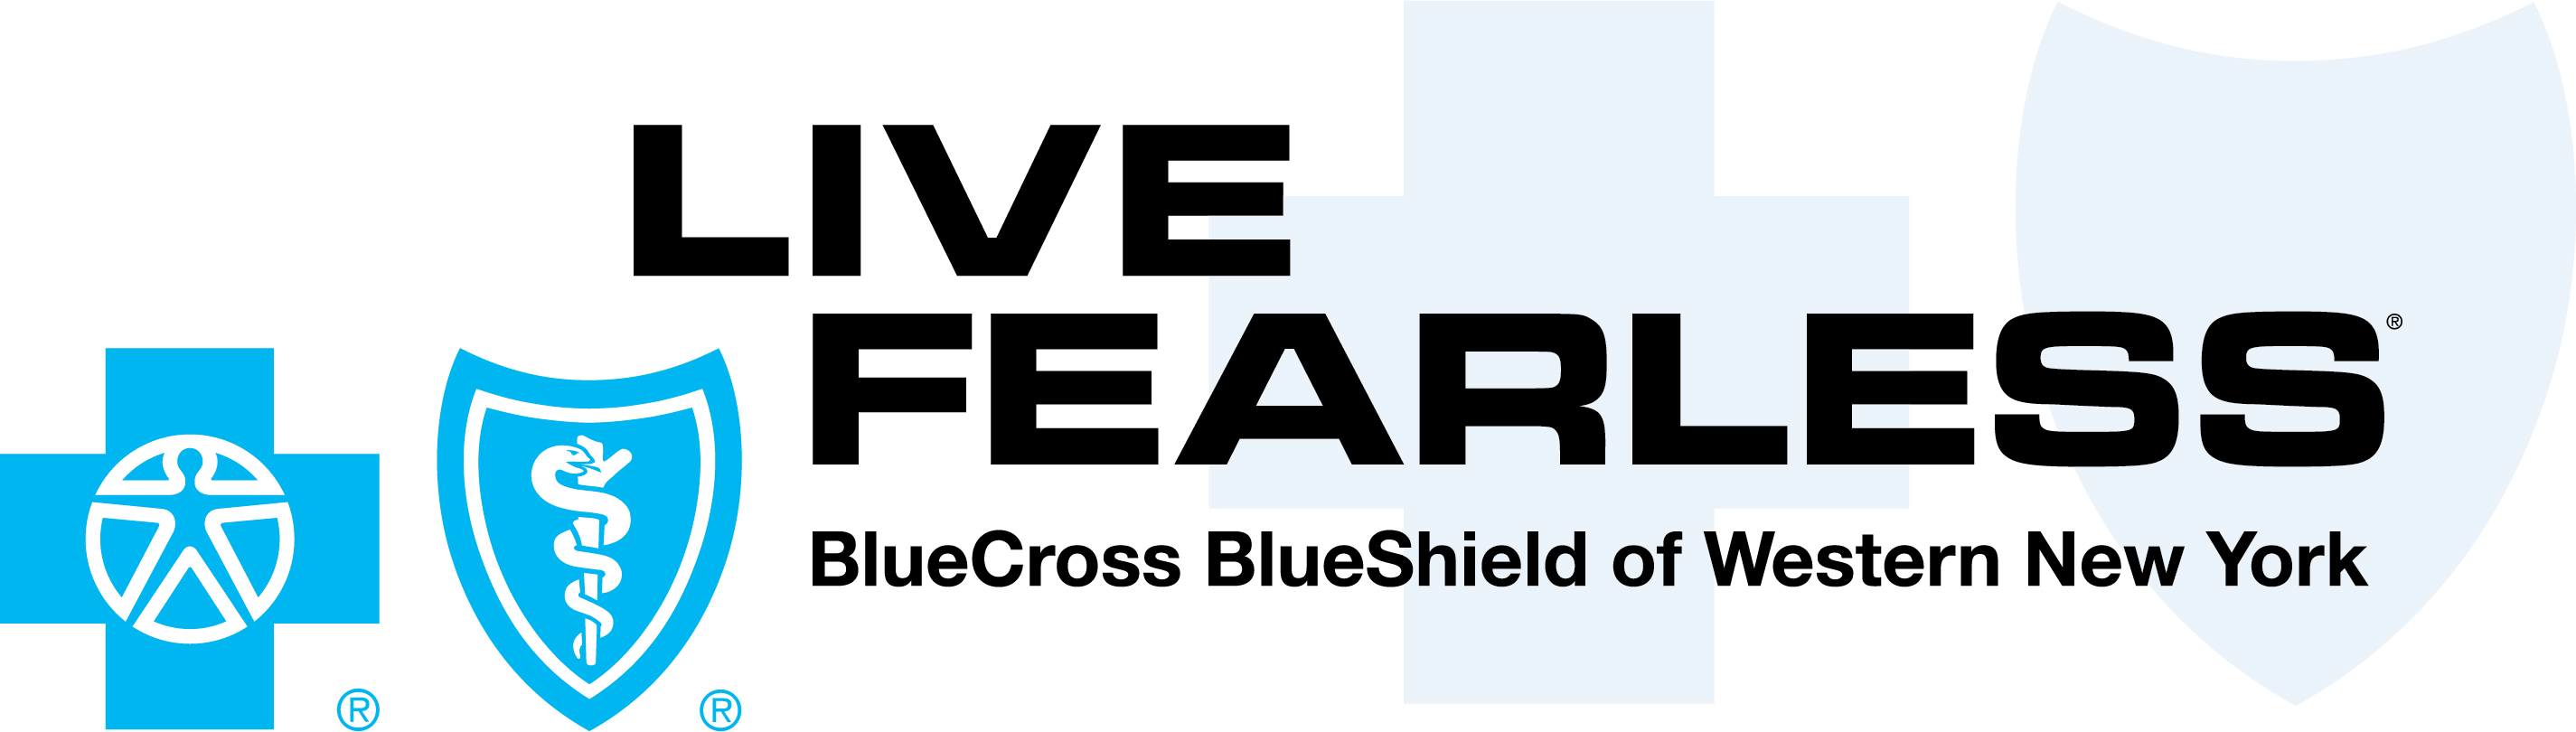 bluecross-bs-2018-updated-logo